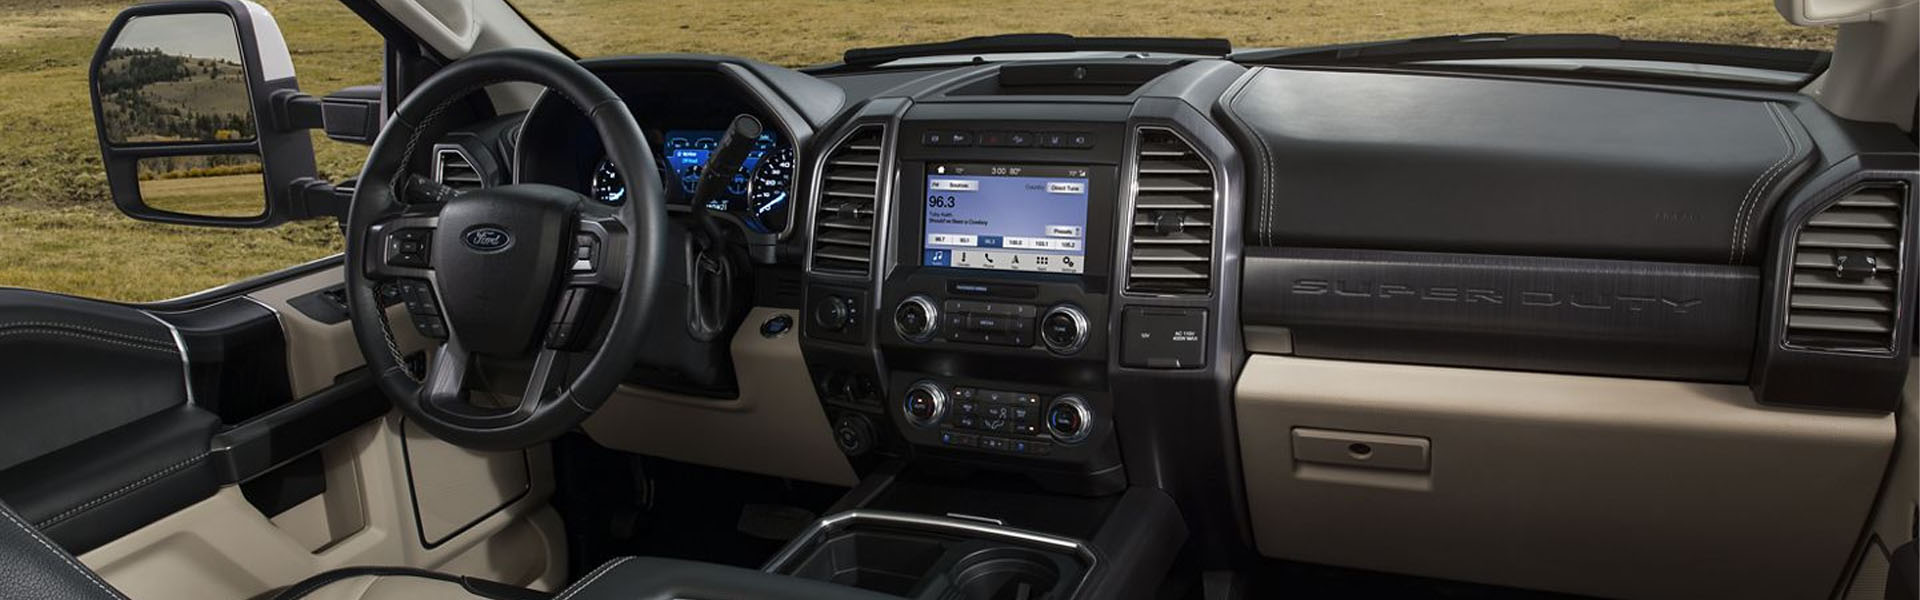 2020 Ford Super Duty F-250 specifications